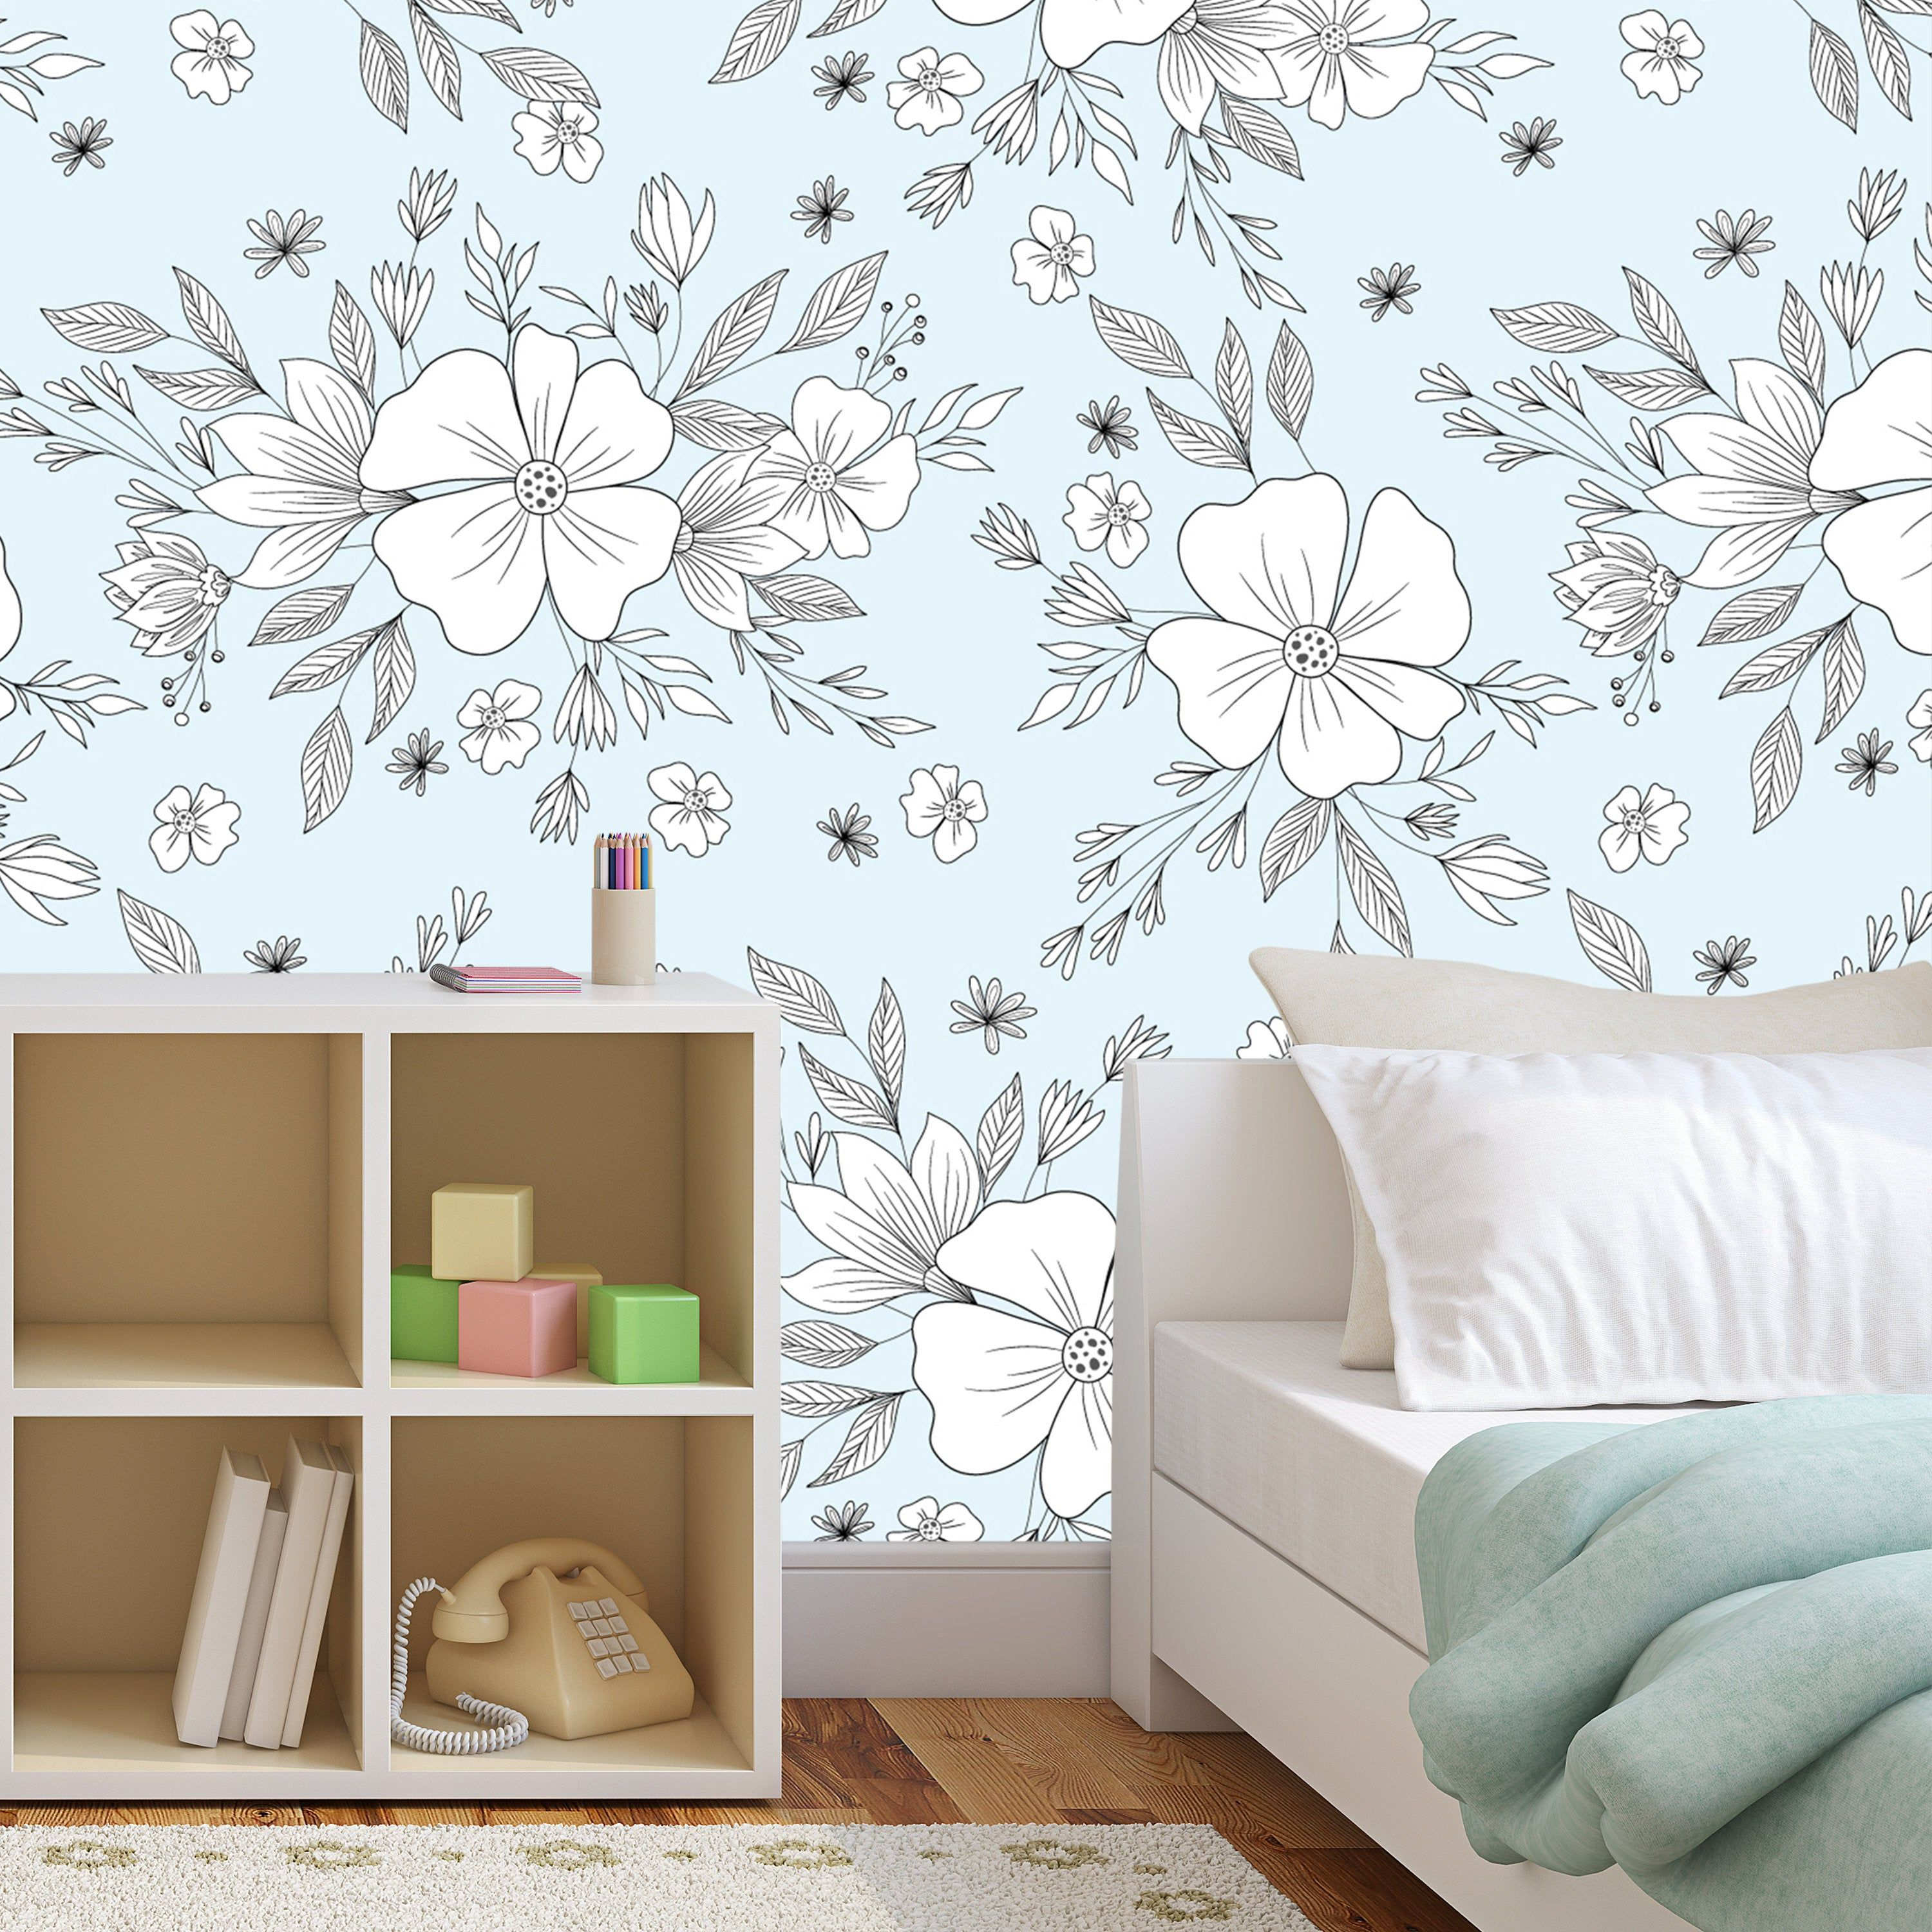 Removable Wallpaper Cube Pattern Geometric Wallpaper Traditional Or Self Adhesive Wallpaper Minimalism Interior Interior Minimal Interior Design